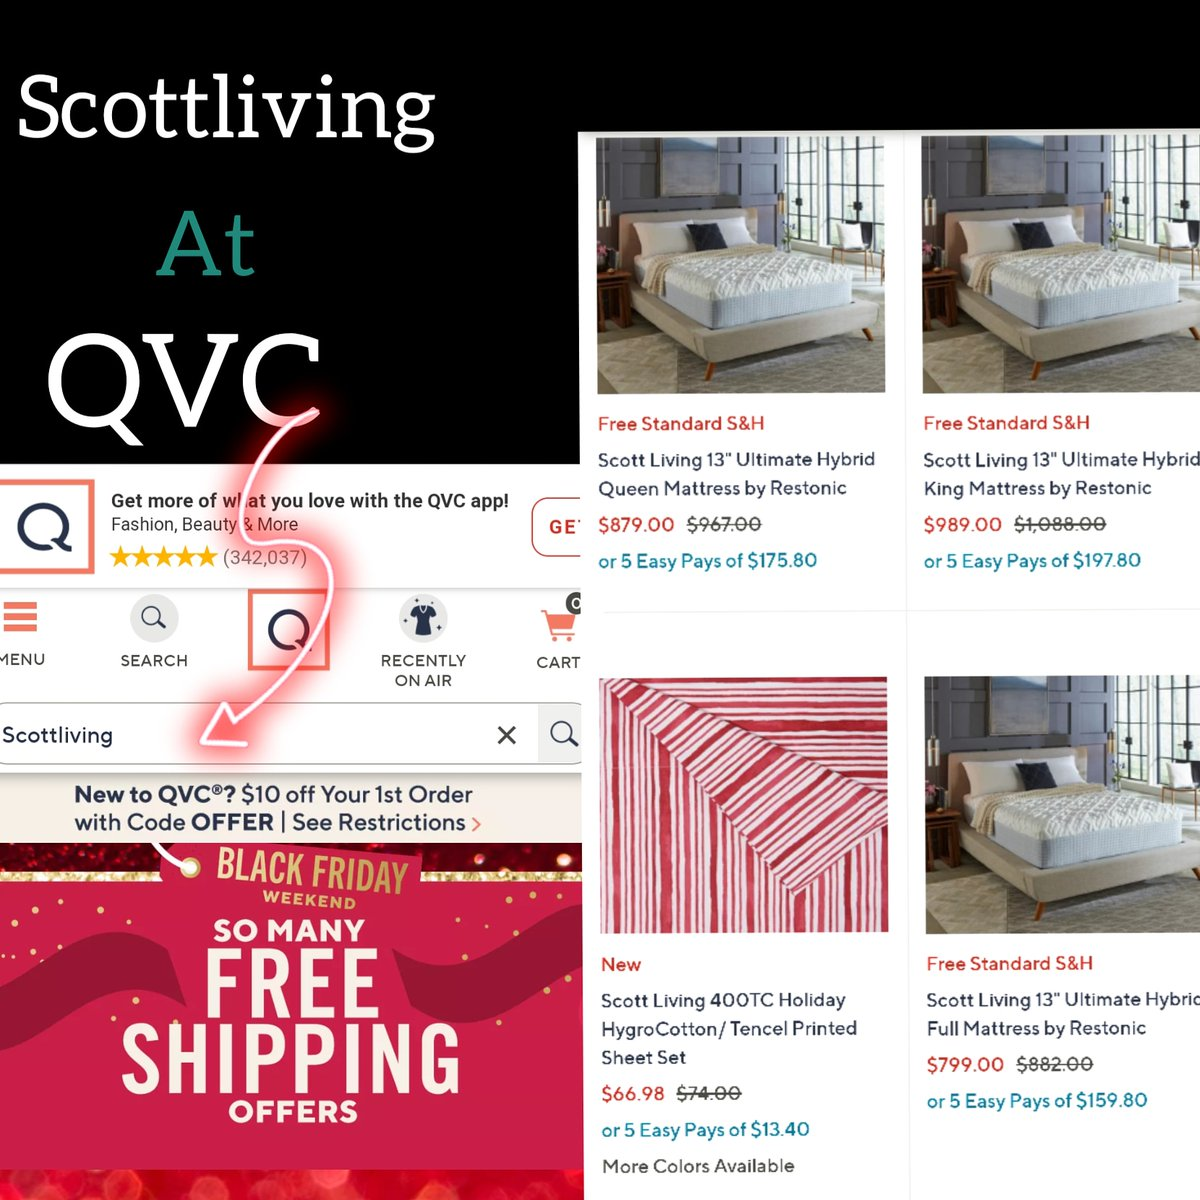 Shop Scottliving @QVC for amazing products #SaturdayMorning #SaturdayThoughts #SaturdayShoutout #SaturdayMotivation #SaturdayVibes #SaturdayExpress #coronavirus #shoponline #Trending #parenting #instagood #trends